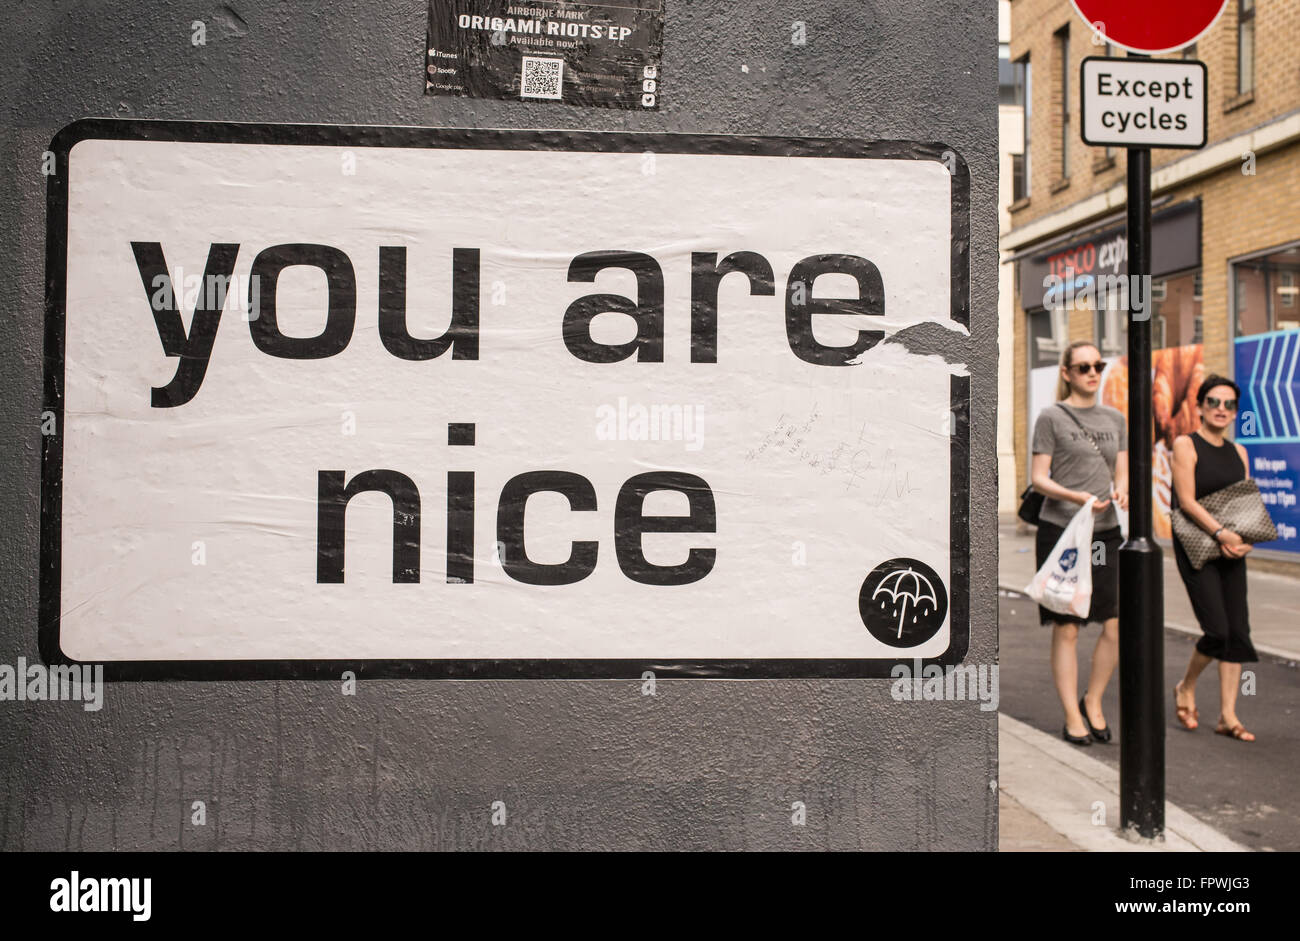 White billboard with the words 'You are nice' on a wall in a street in London. Two woman with sunglasses - Stock Image